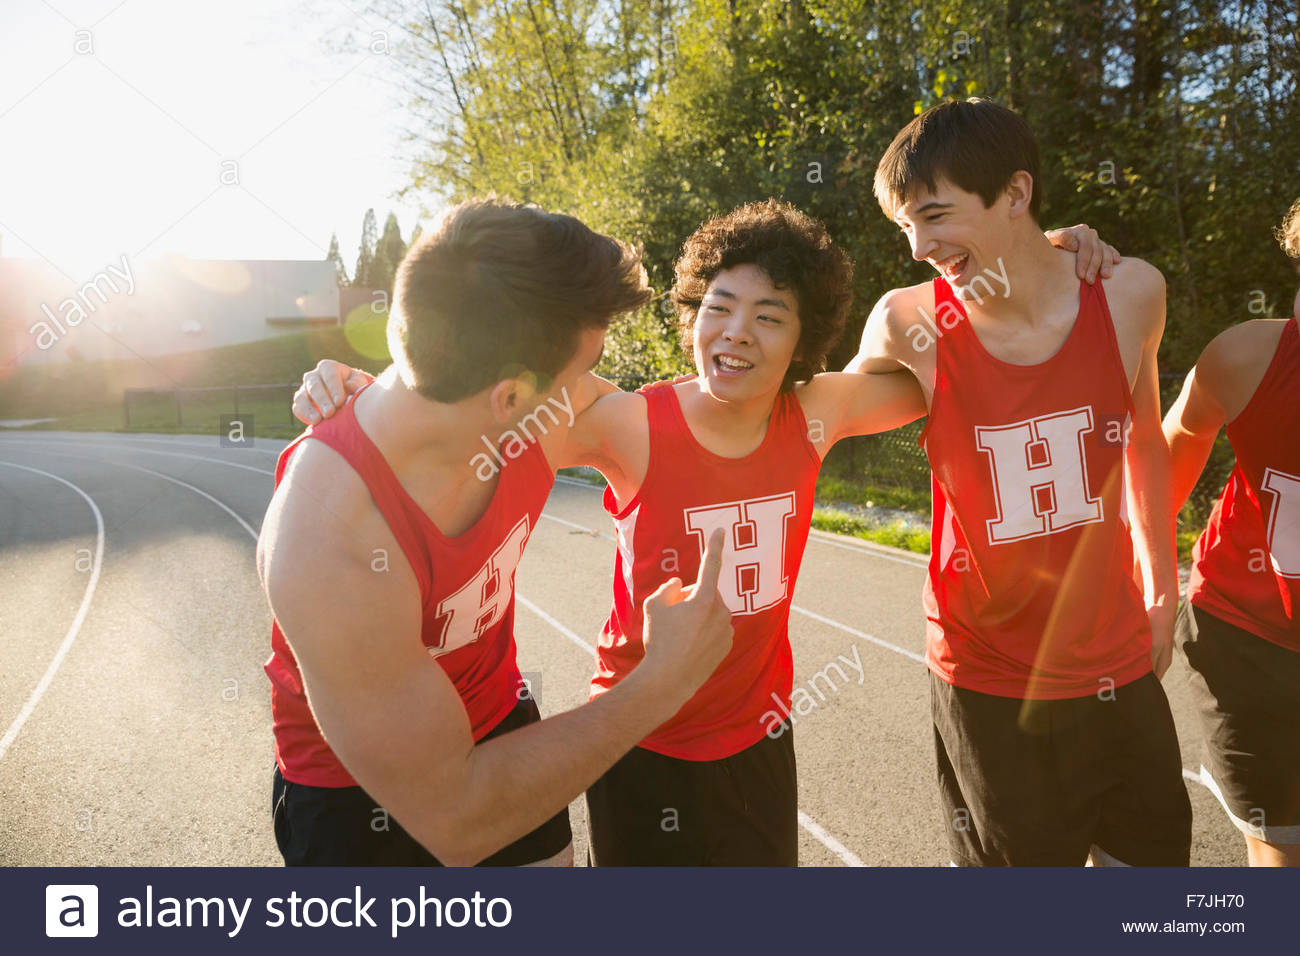 High school track and field athletes bonding - Stock Image